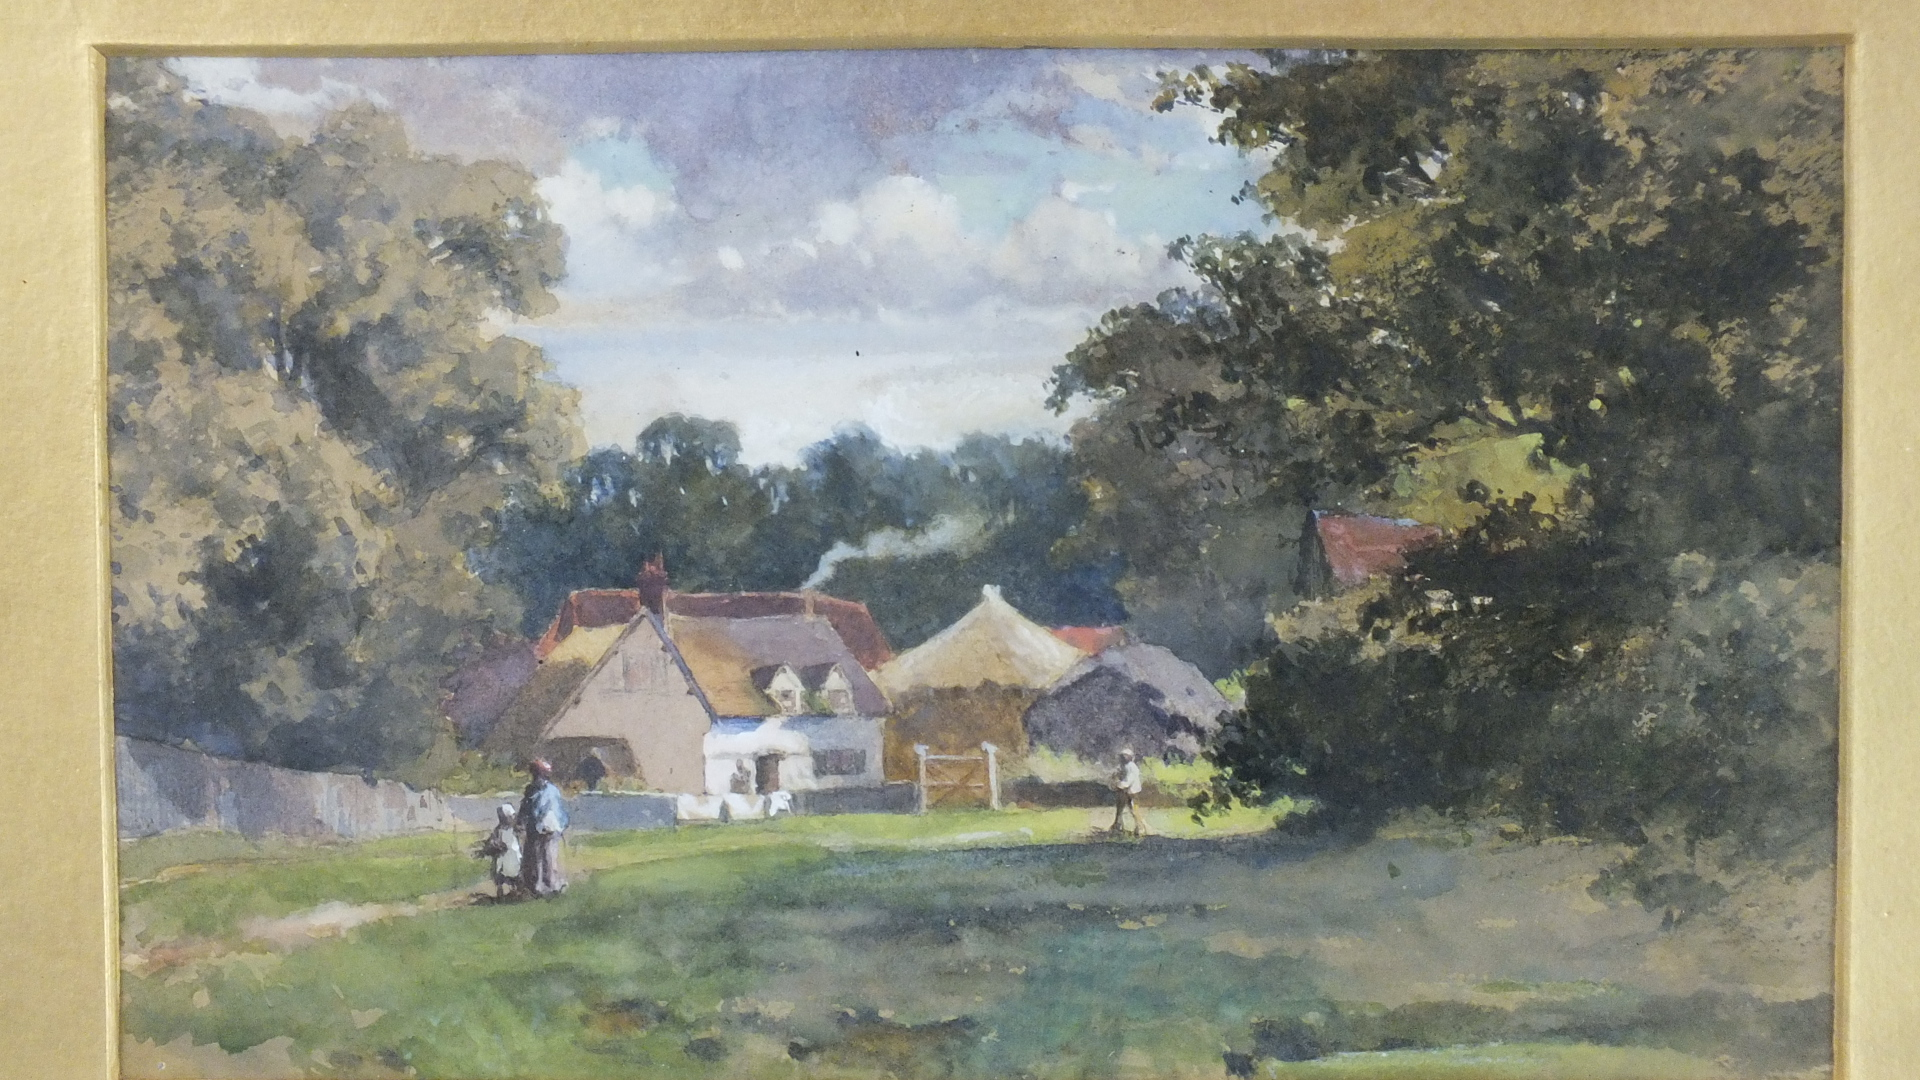 Lot 28 - M Smythson (19th century) DUCKS ON A STREAM WITH BARN IN BACKGROUND Signed watercolour, dated